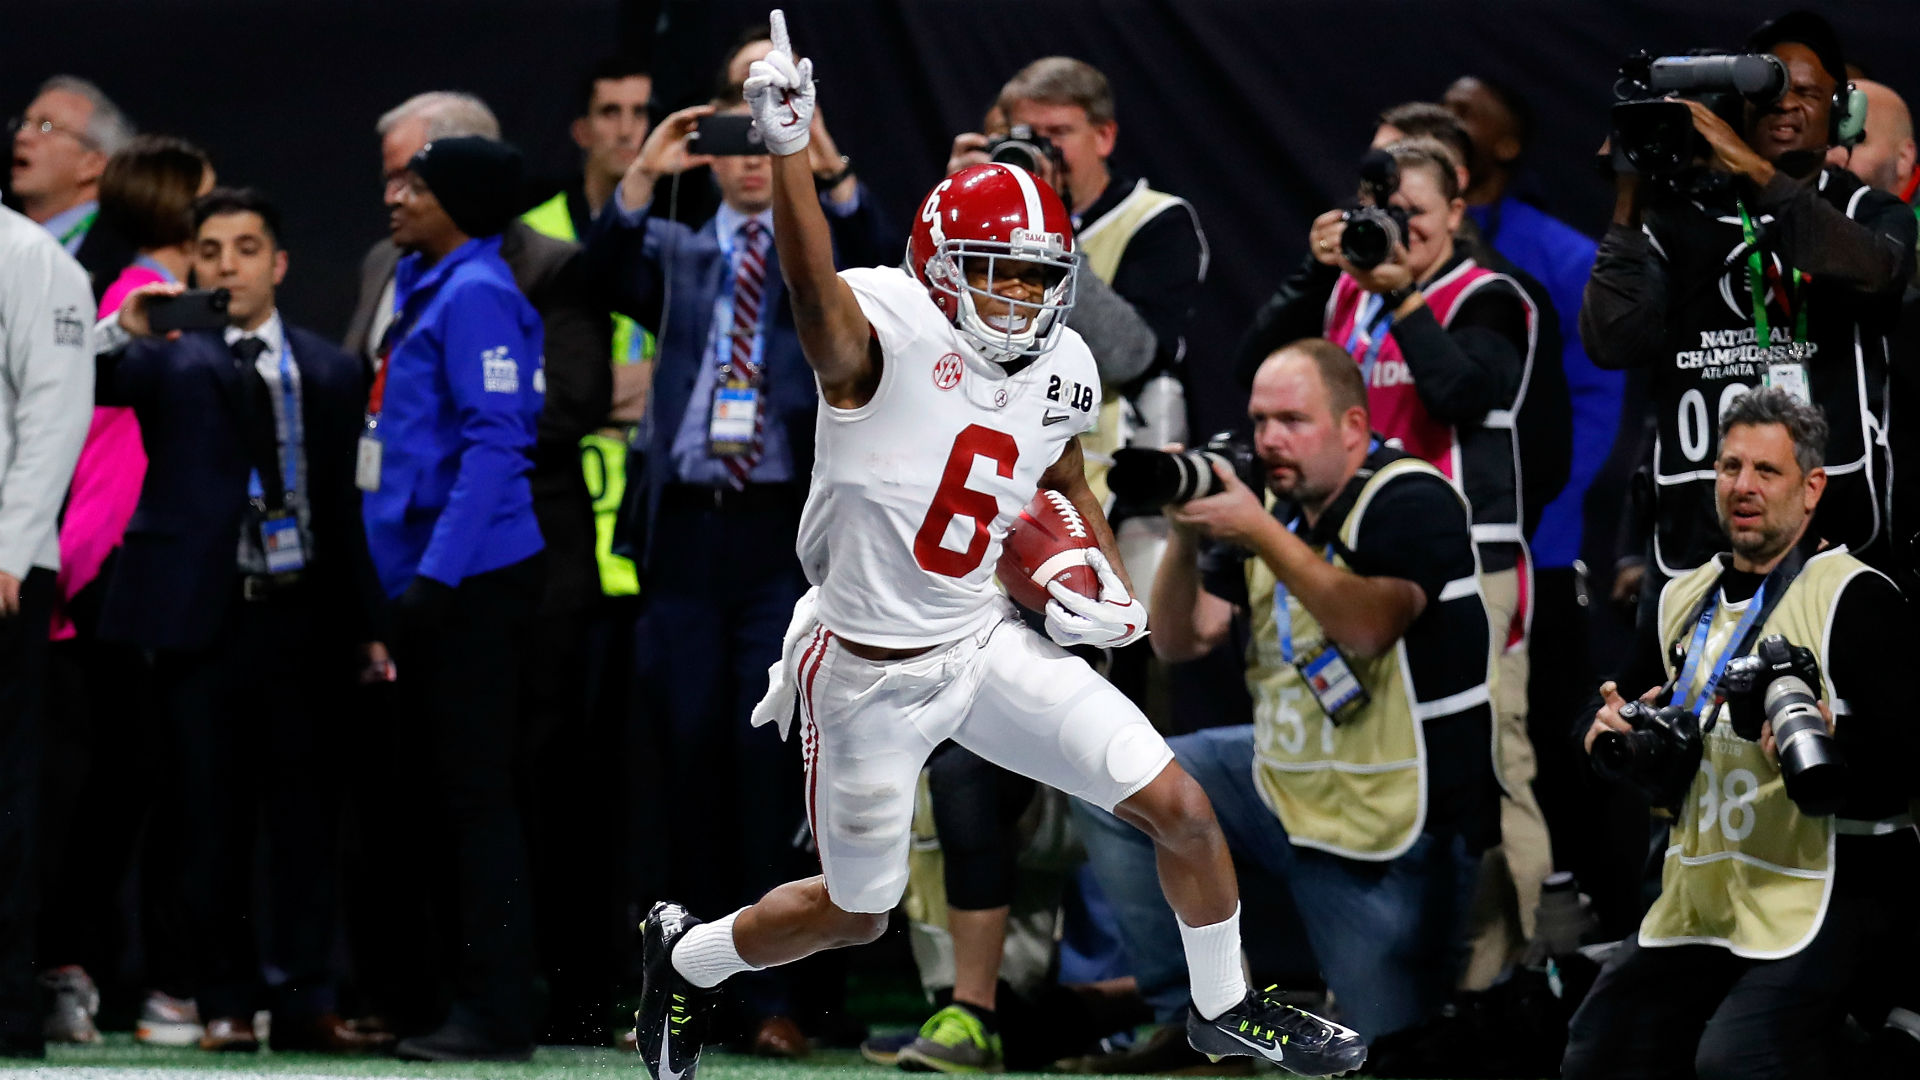 Alabama pulls out dramatic win in overtime for 17th national title